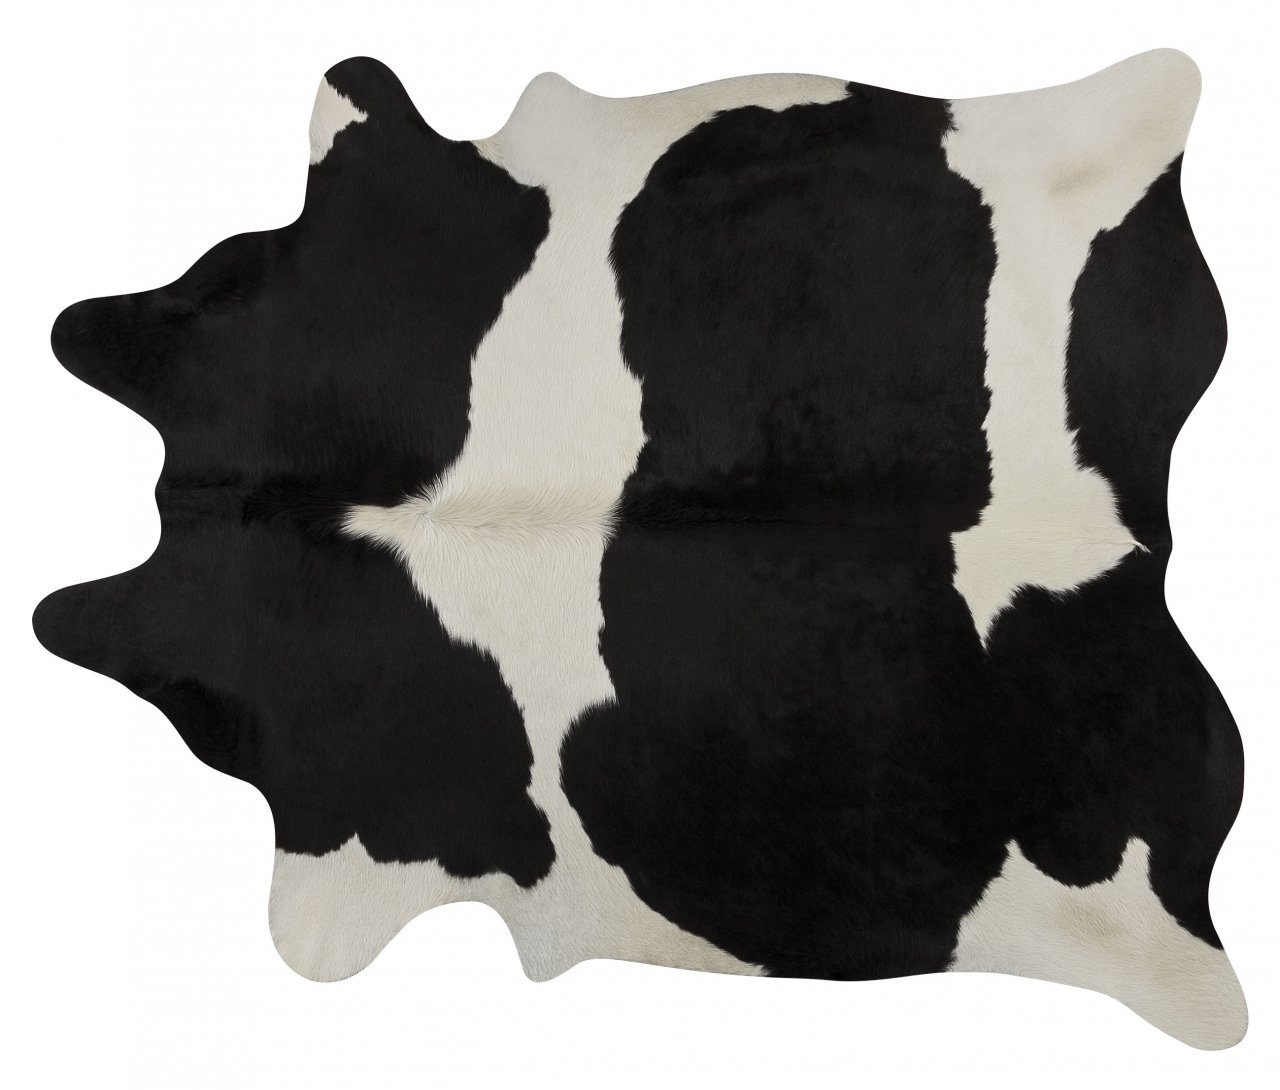 Black and White Brazilian Cowhide Rug Cow Hide Area Rugs - Size XXL